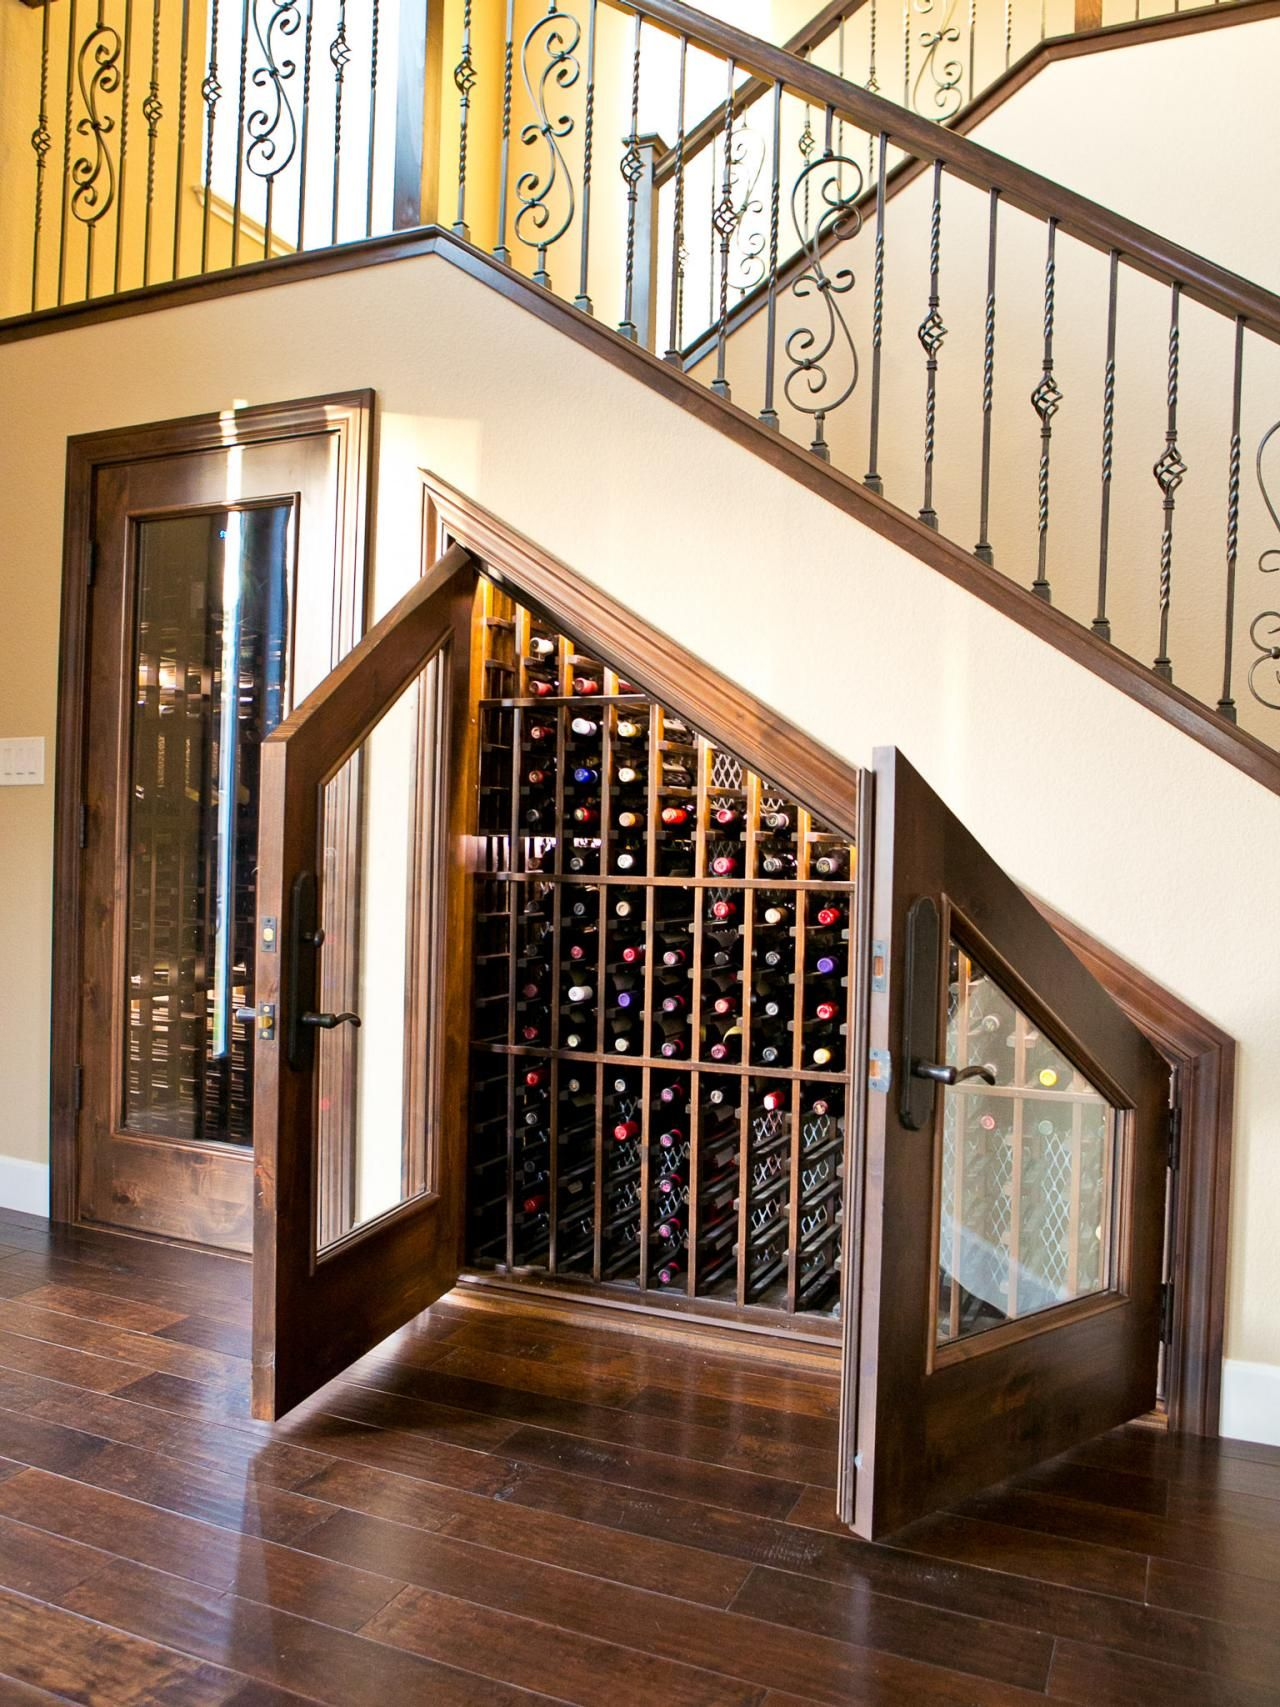 Built in wine racks for kitchen cabinets - 15 Creative Wine Racks And Wine Storage Ideas Easy Ideas For Organizing And Cleaning Your